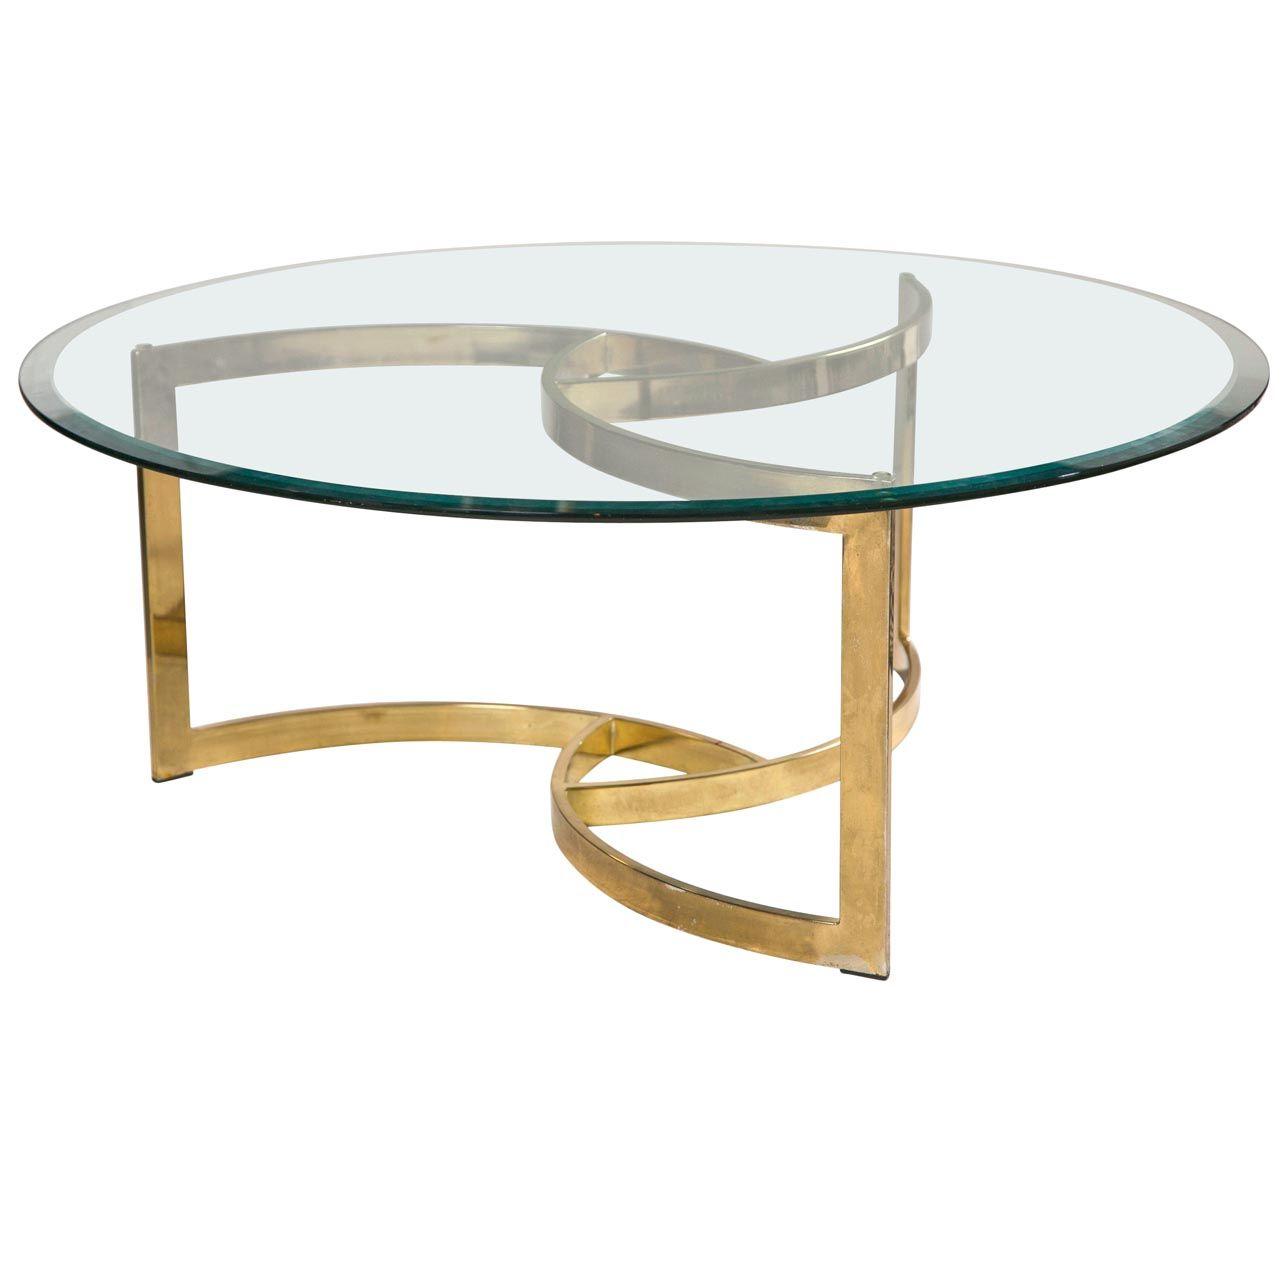 Glass Coffee Table Gold Legs Coffee Table Design Ideas Round Glass Coffee Table Glass Top Coffee Table Coffee Table [ jpg ]